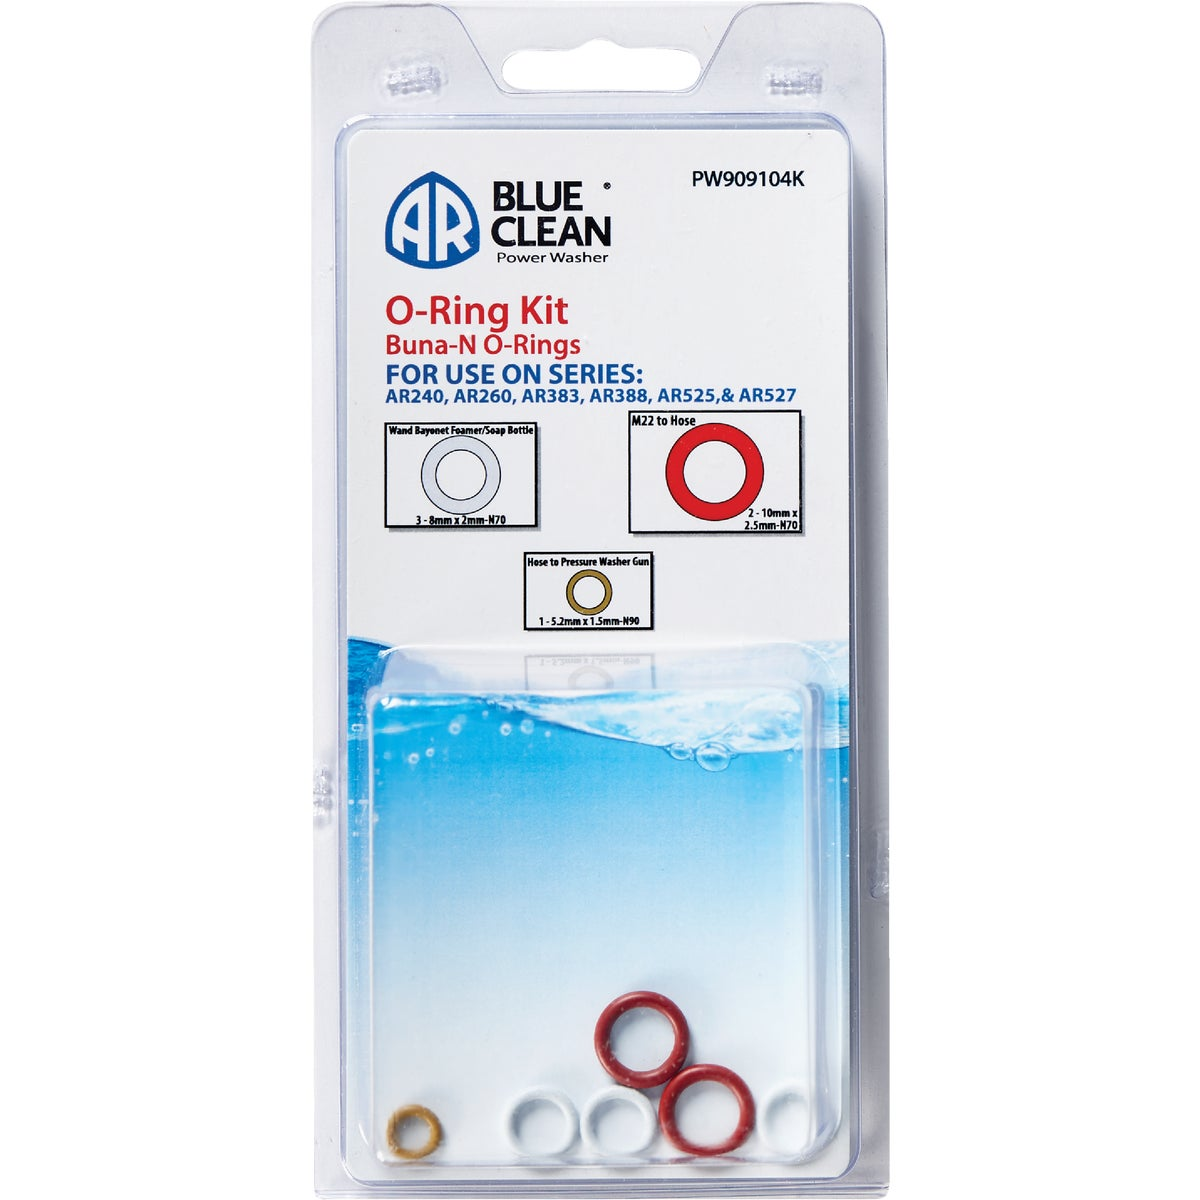 O-RING KIT - AR909104 by Ar Blue Clean